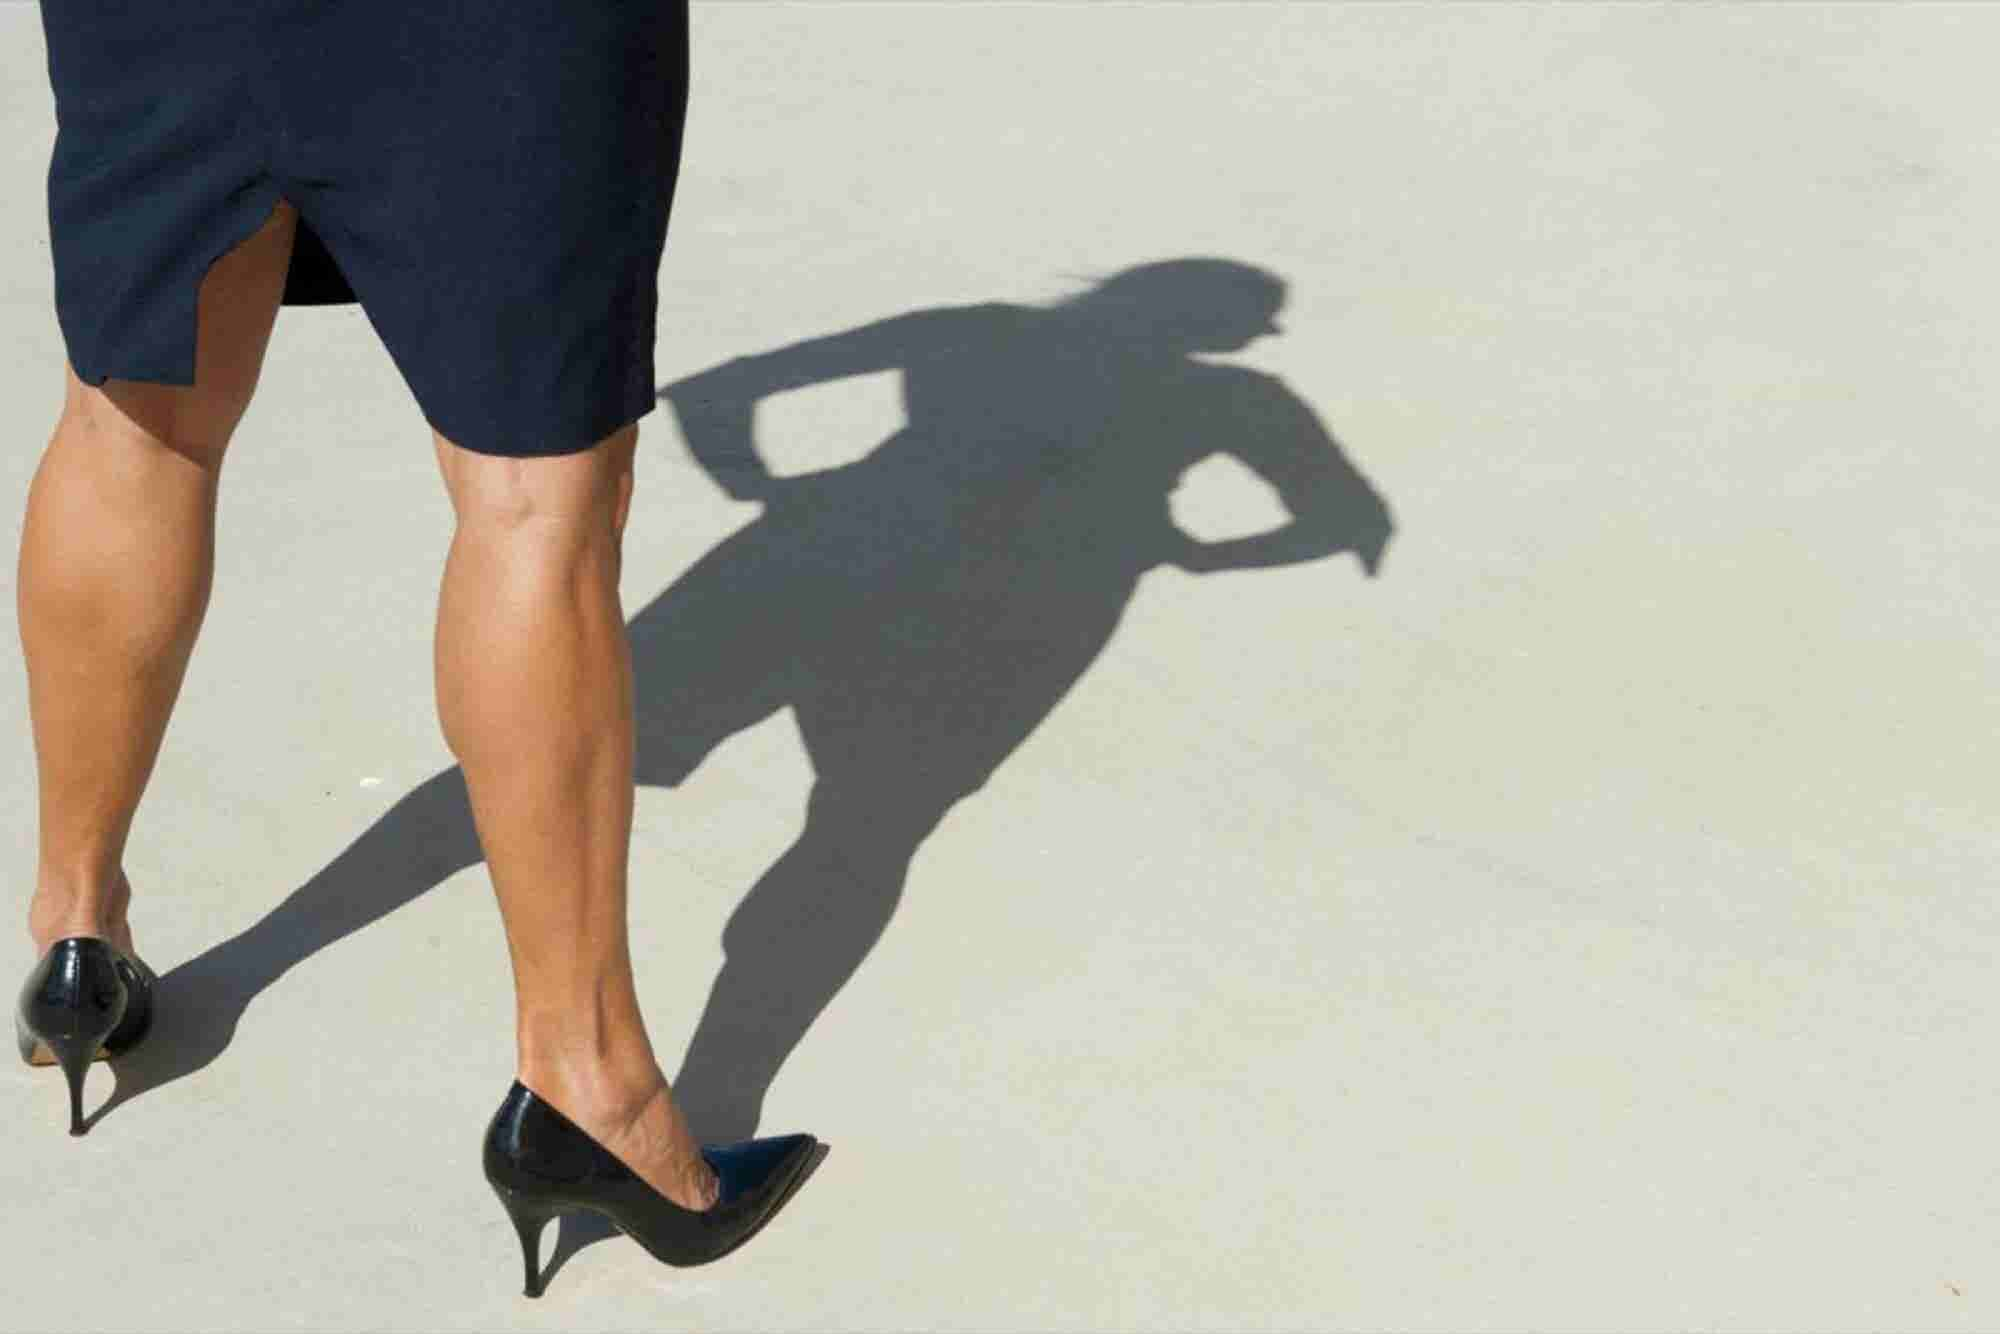 Yes, You Can Appear More Confident When Meeting a Client